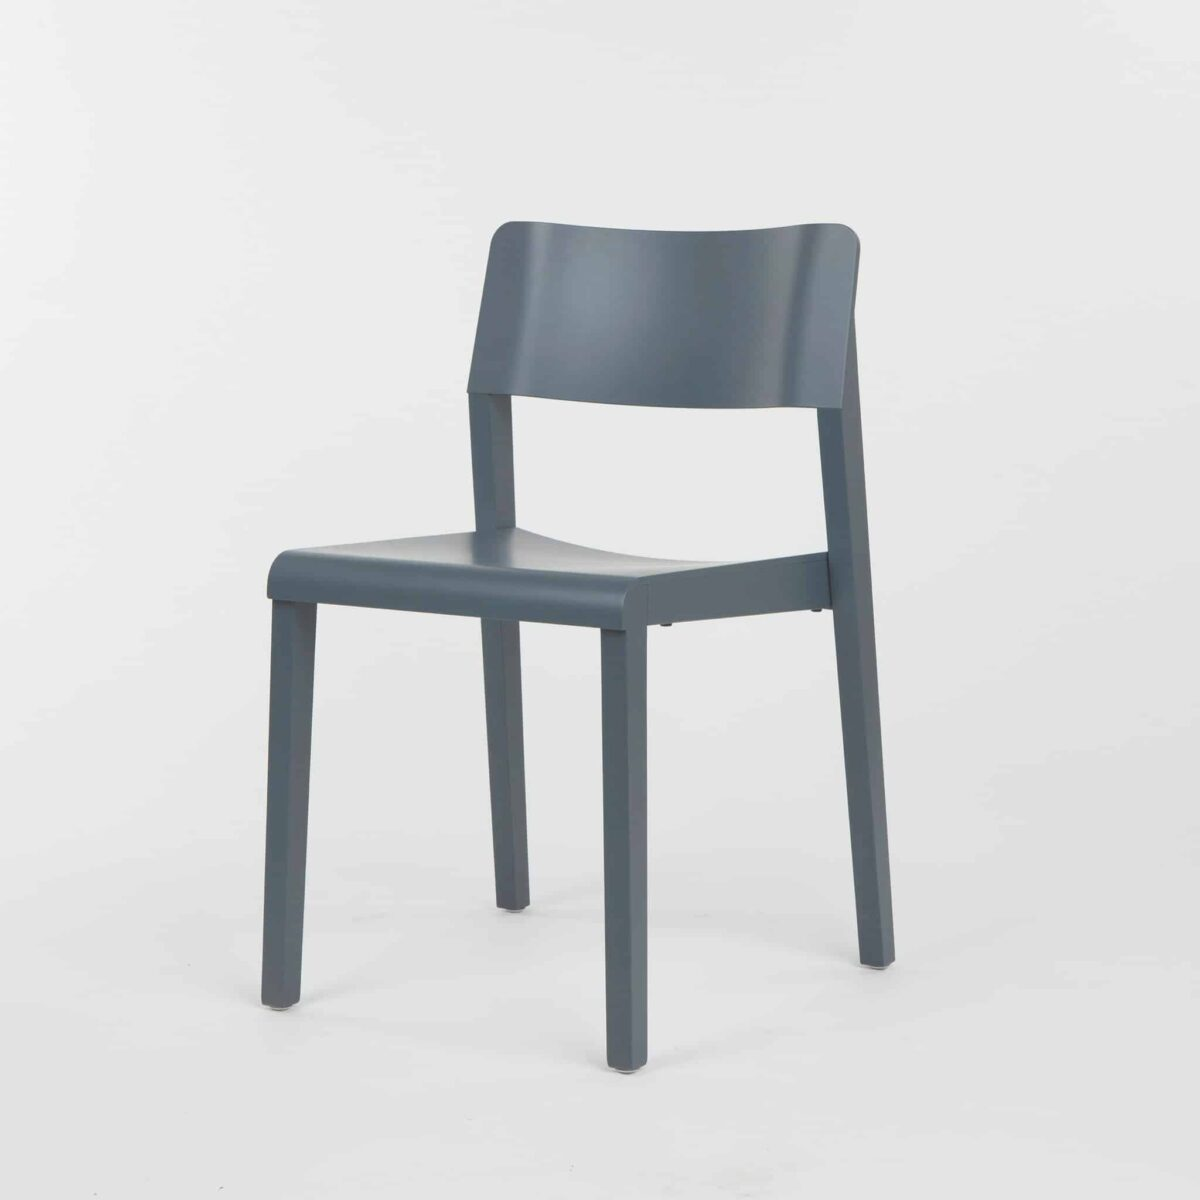 another-country-thonet-chair-330-no-armrests-chamberlayne-grey-001.jpeg